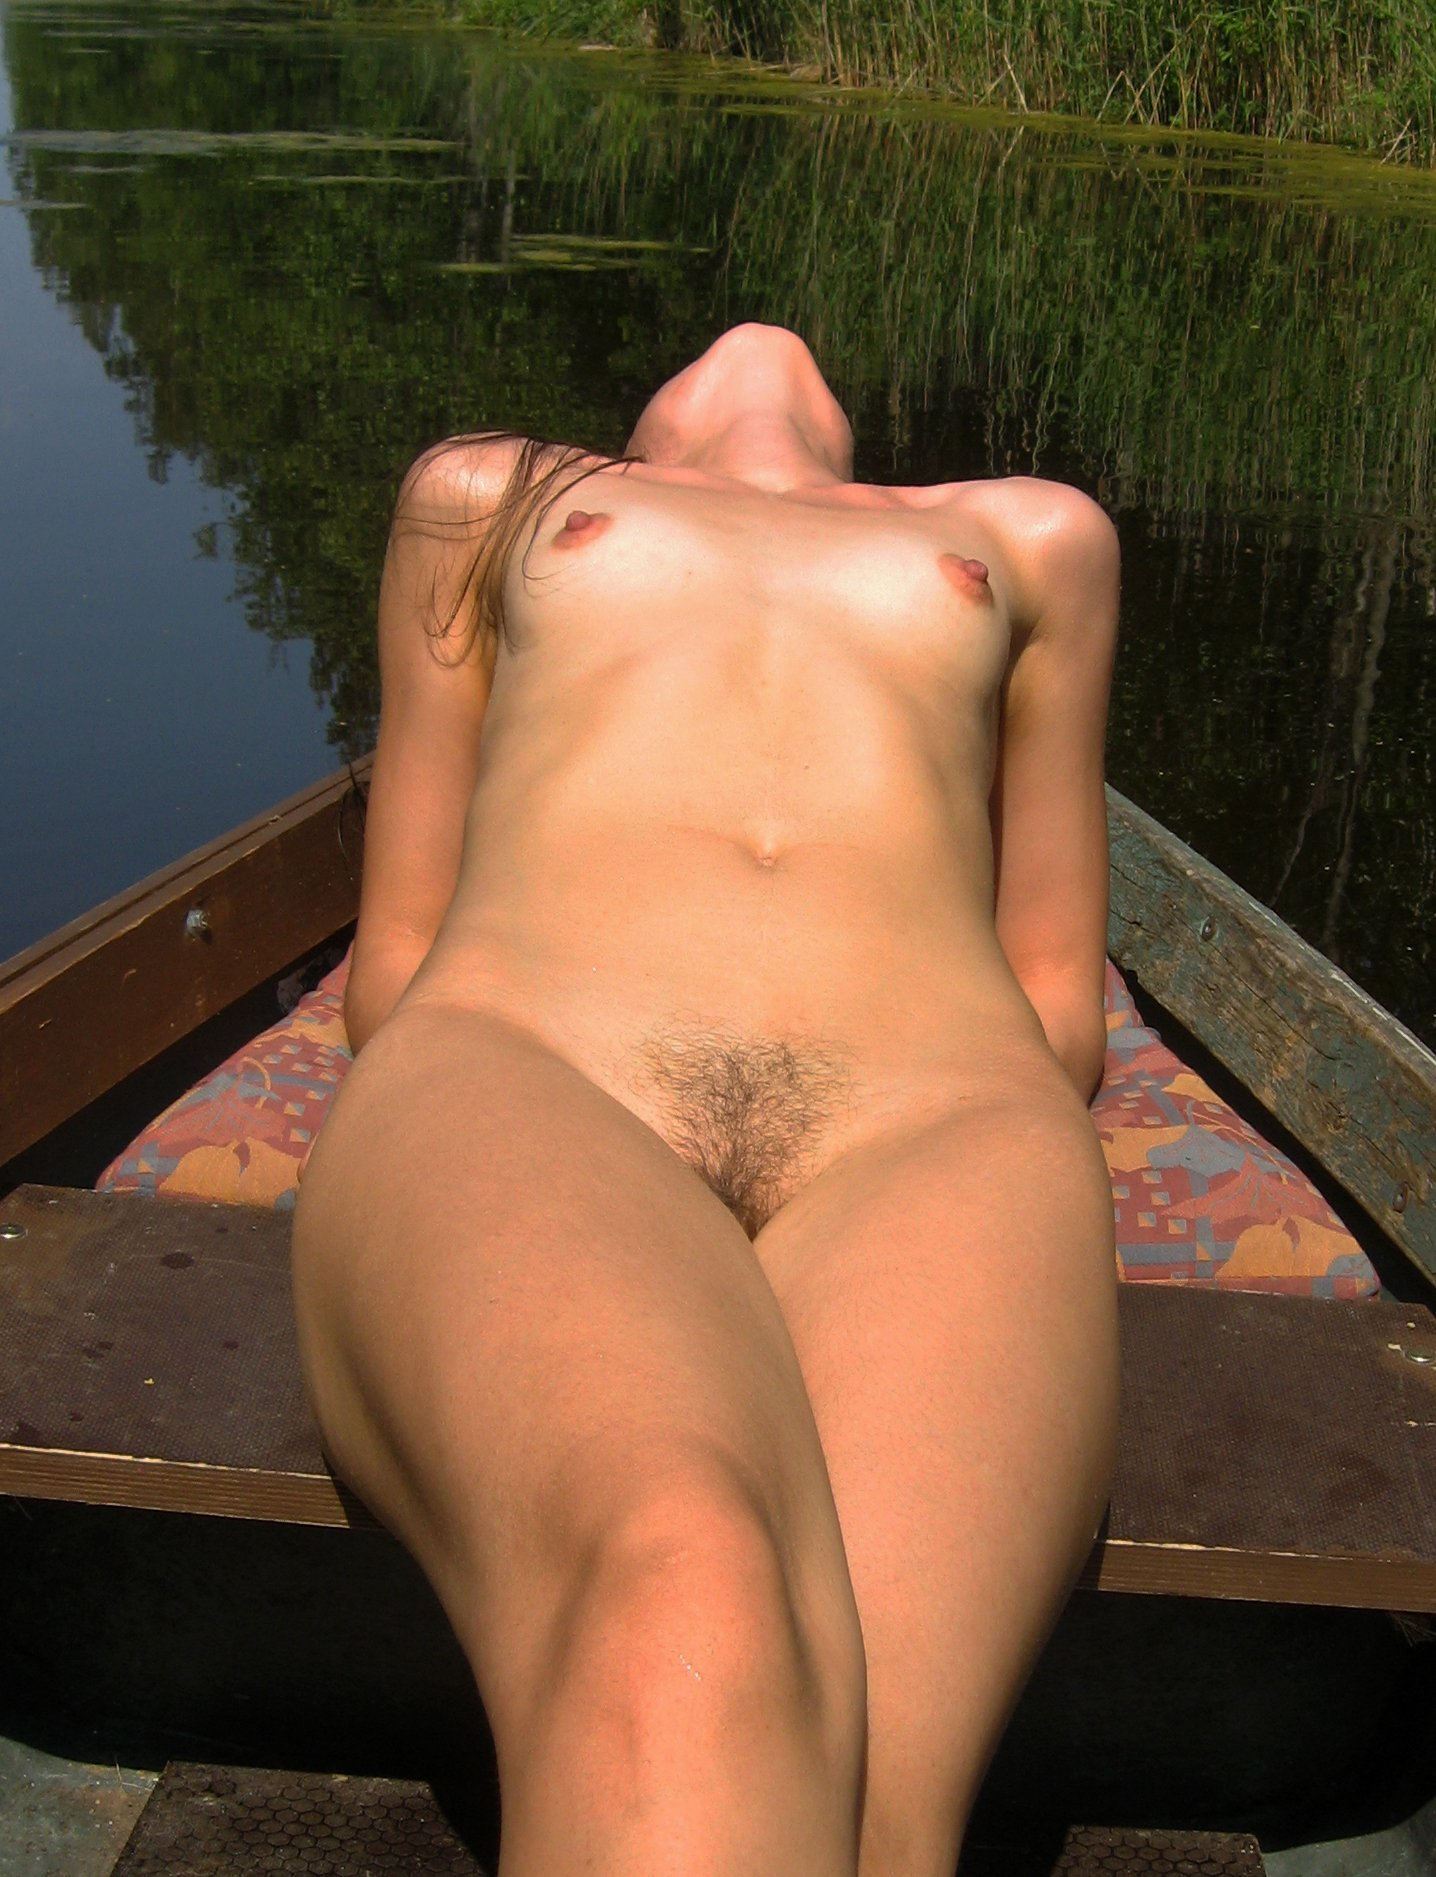 hot-girl-shows-boobs-in-boat